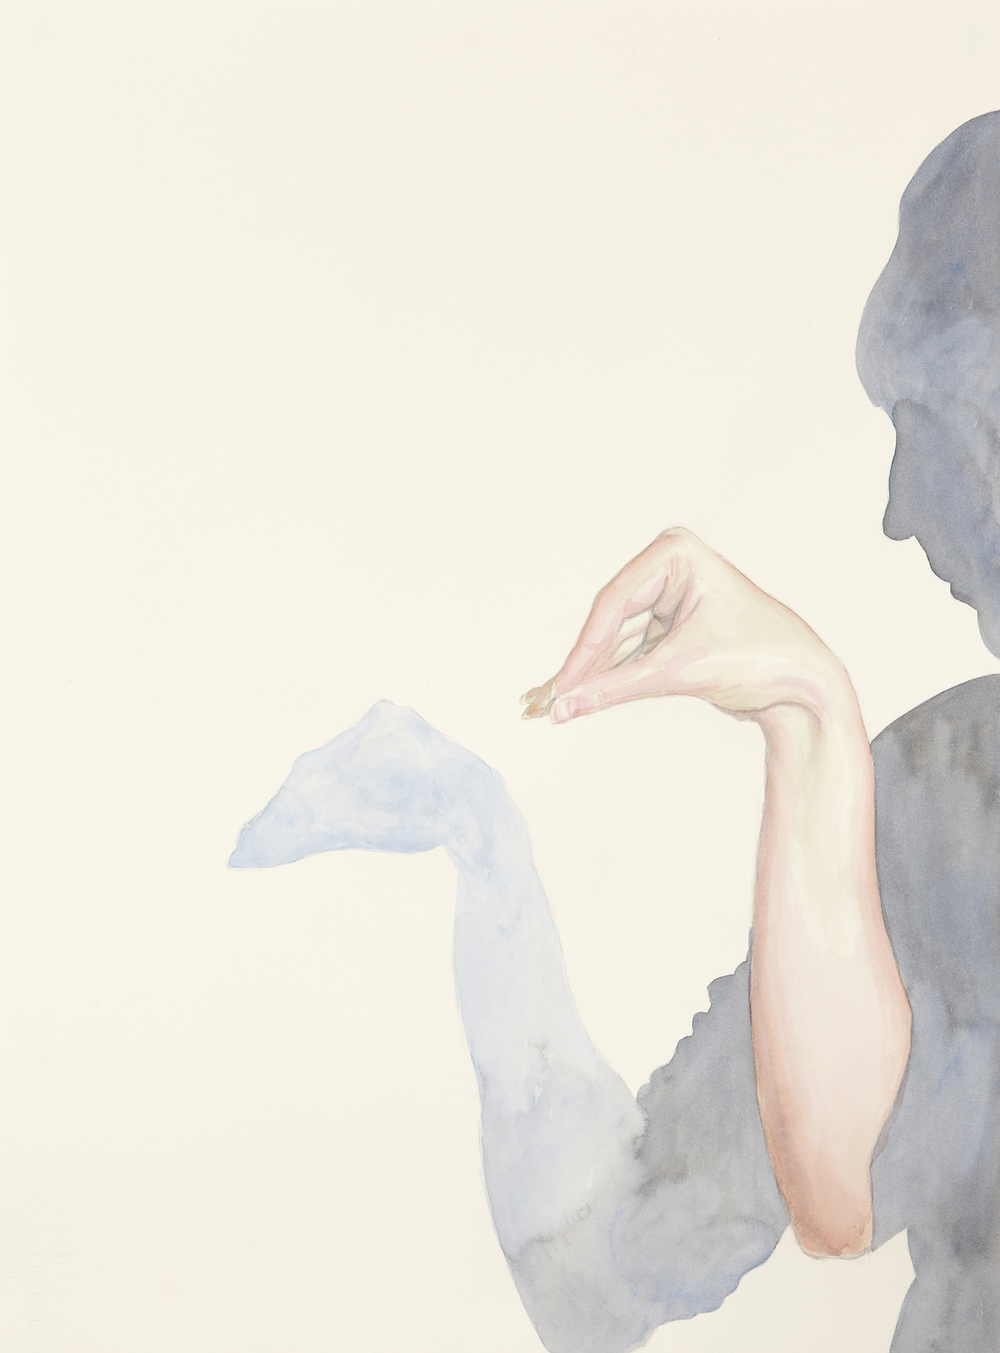 Two, 2011, Watercolour on paper, 56 x 76 cm, Photo: Sam Scoufos